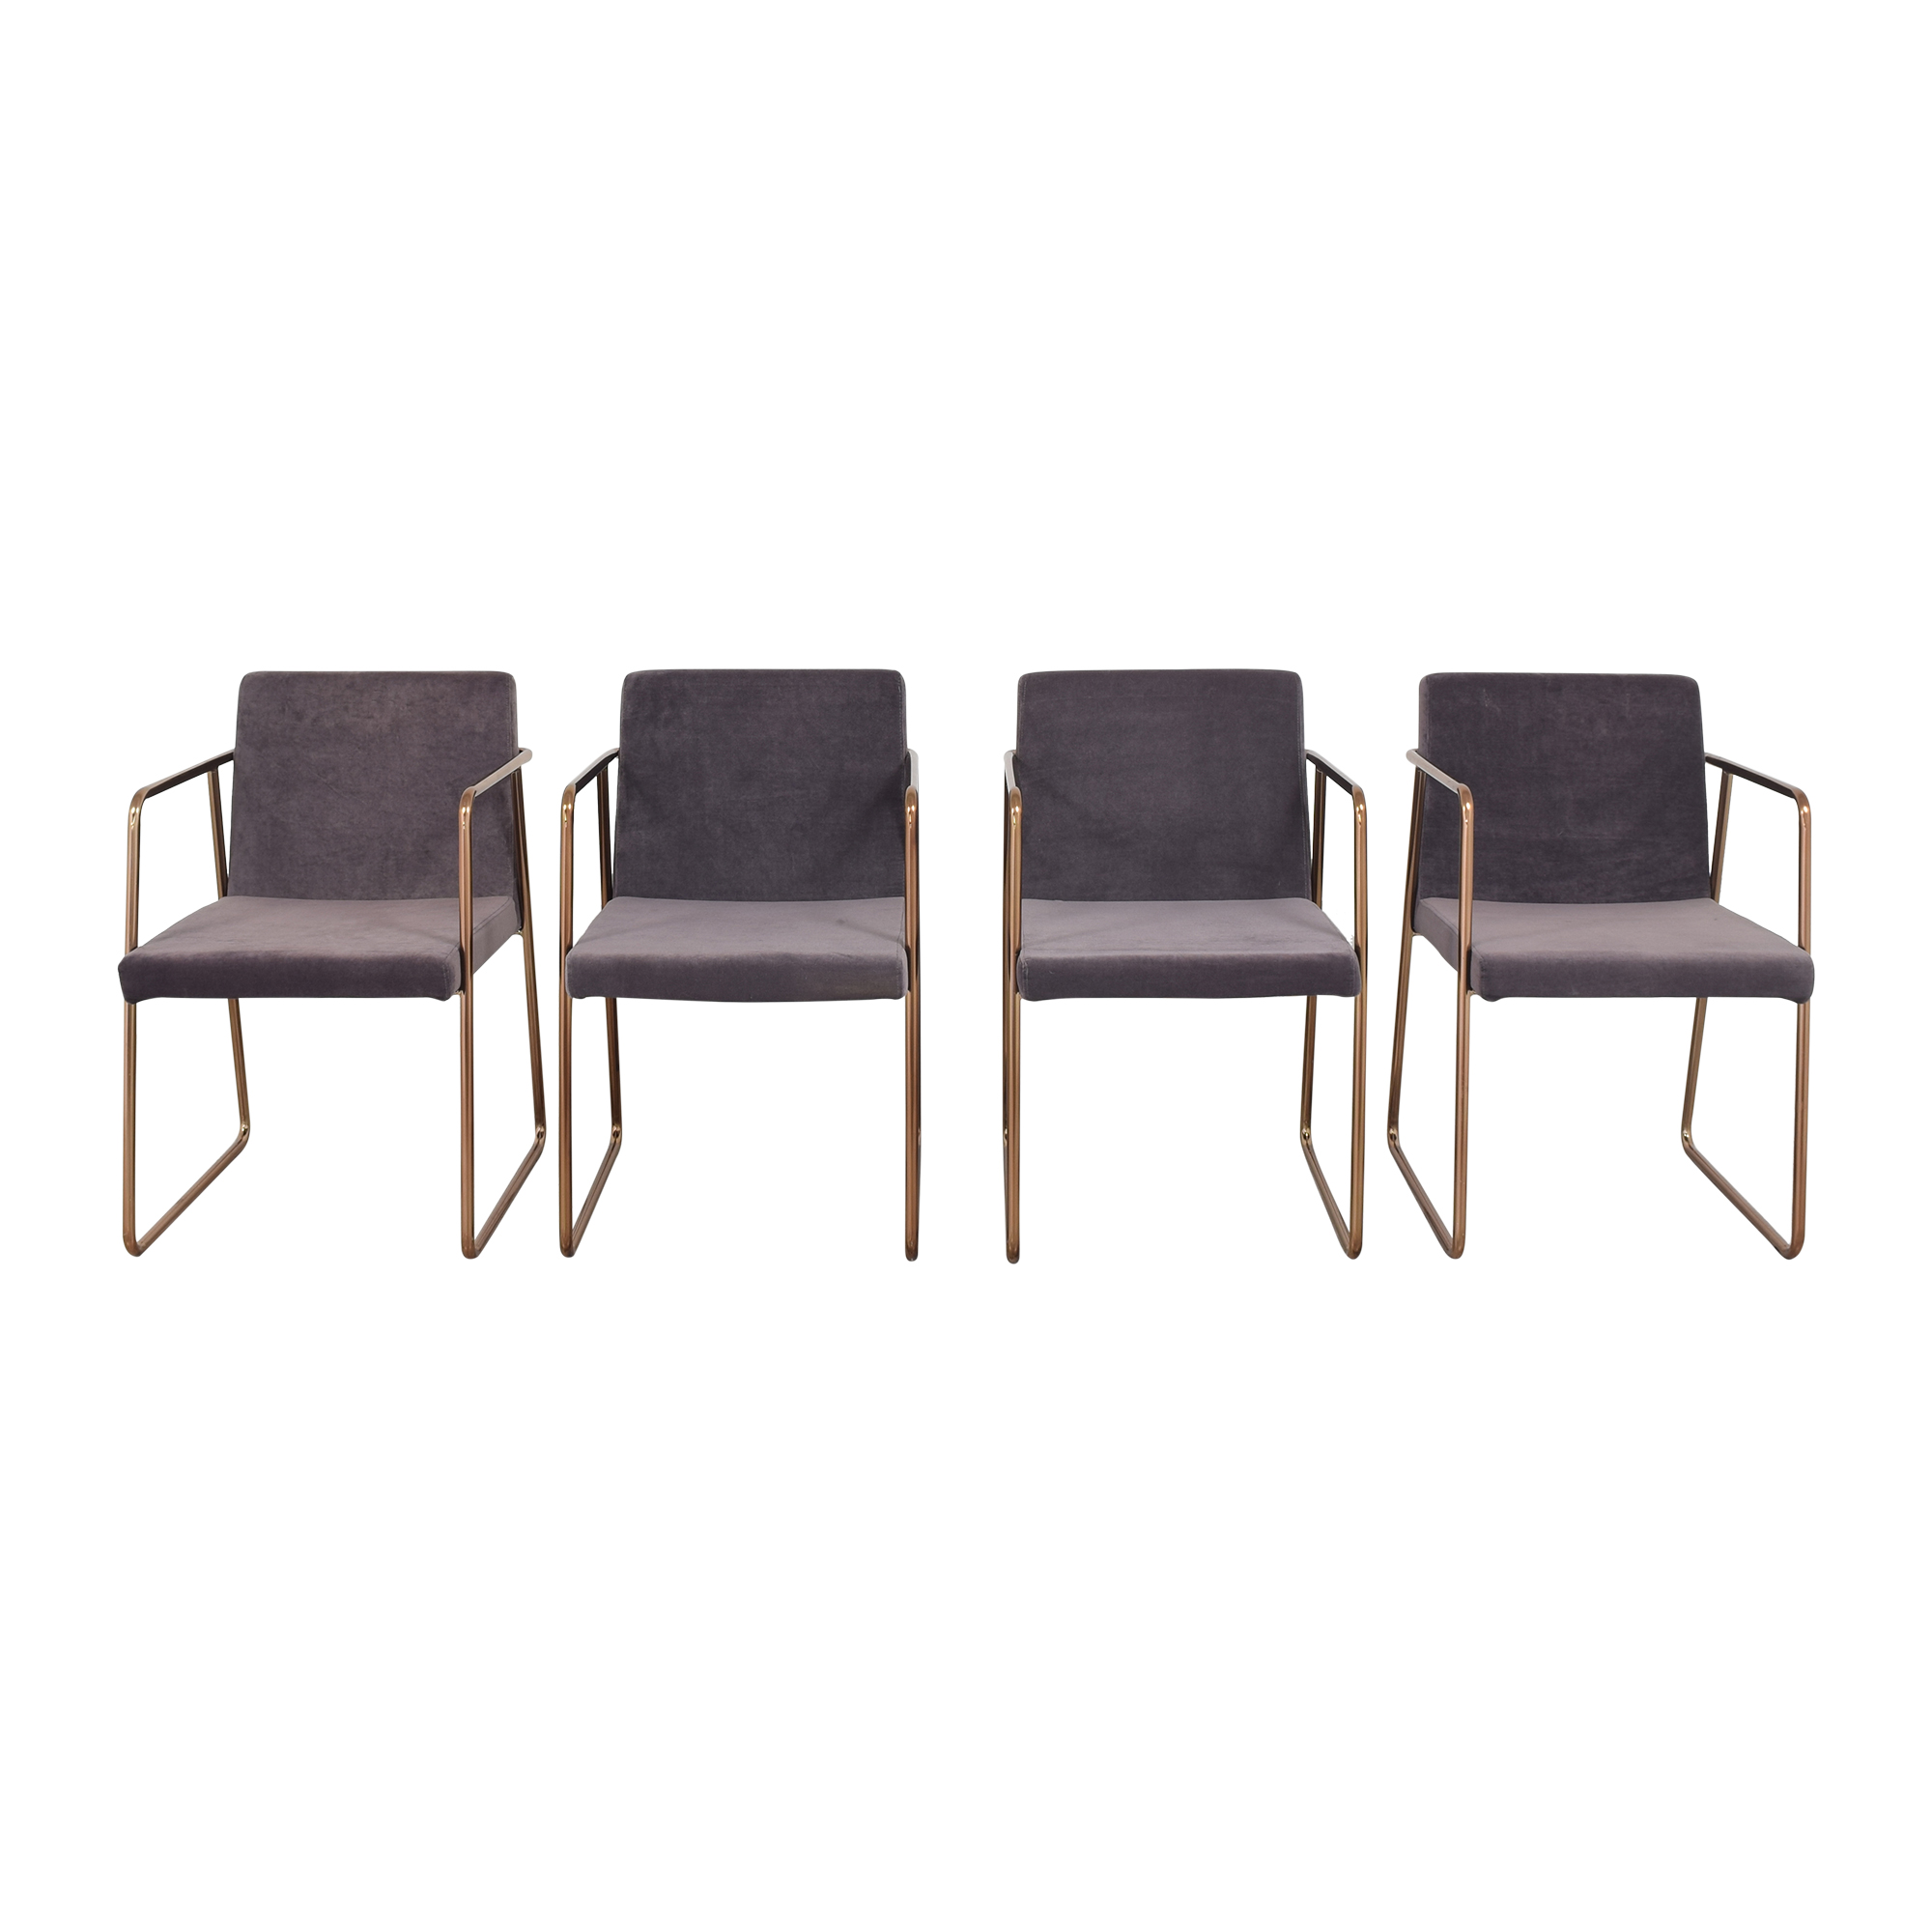 CB2 CB2 Rouka Chairs ct